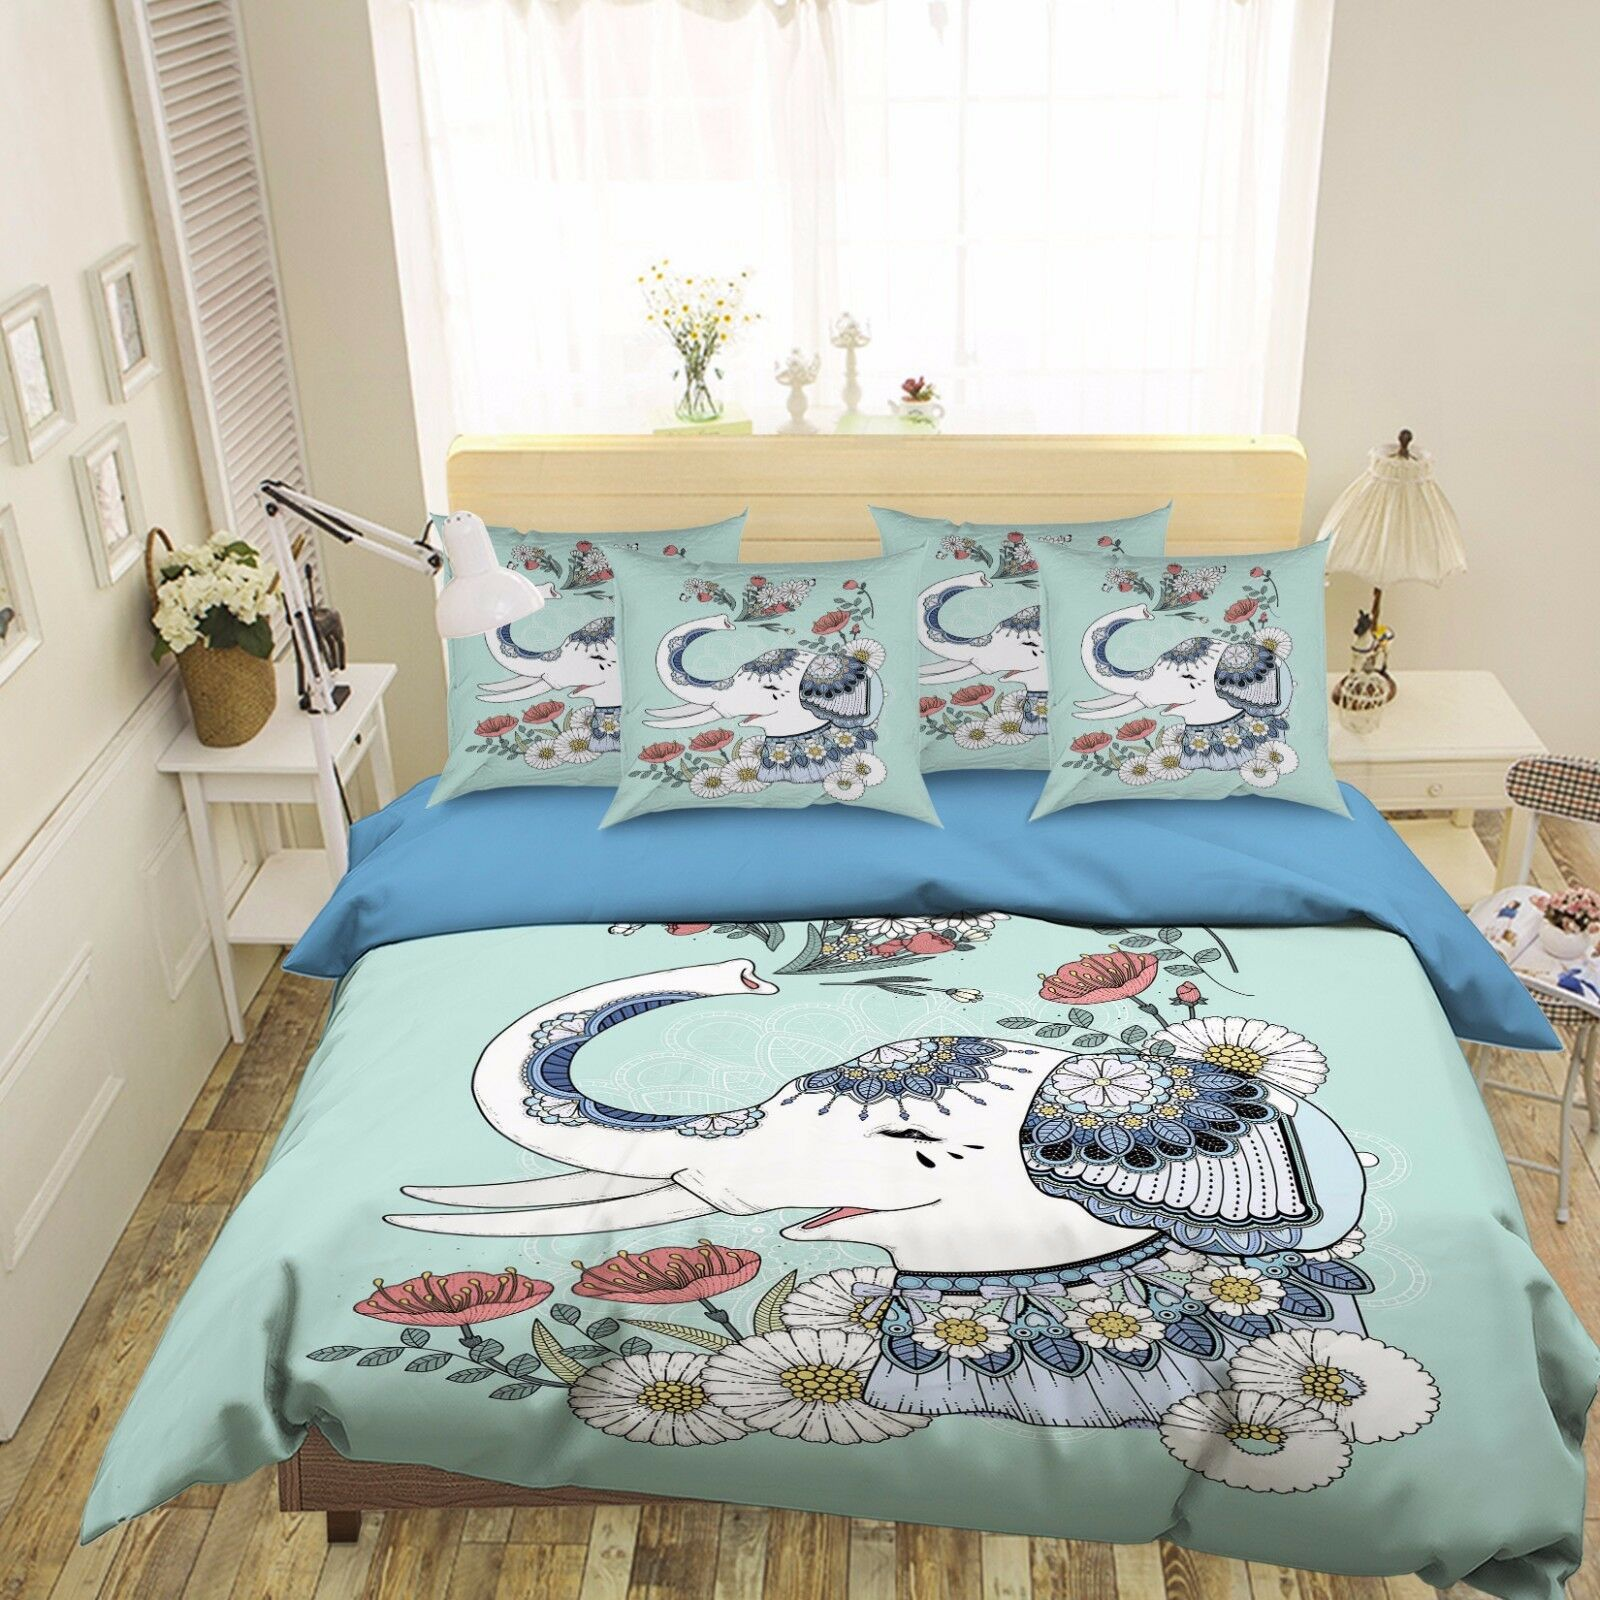 3D Elephant Cartoon 532 Bed Pillowcases Quilt Duvet Cover Set Single Queen CA